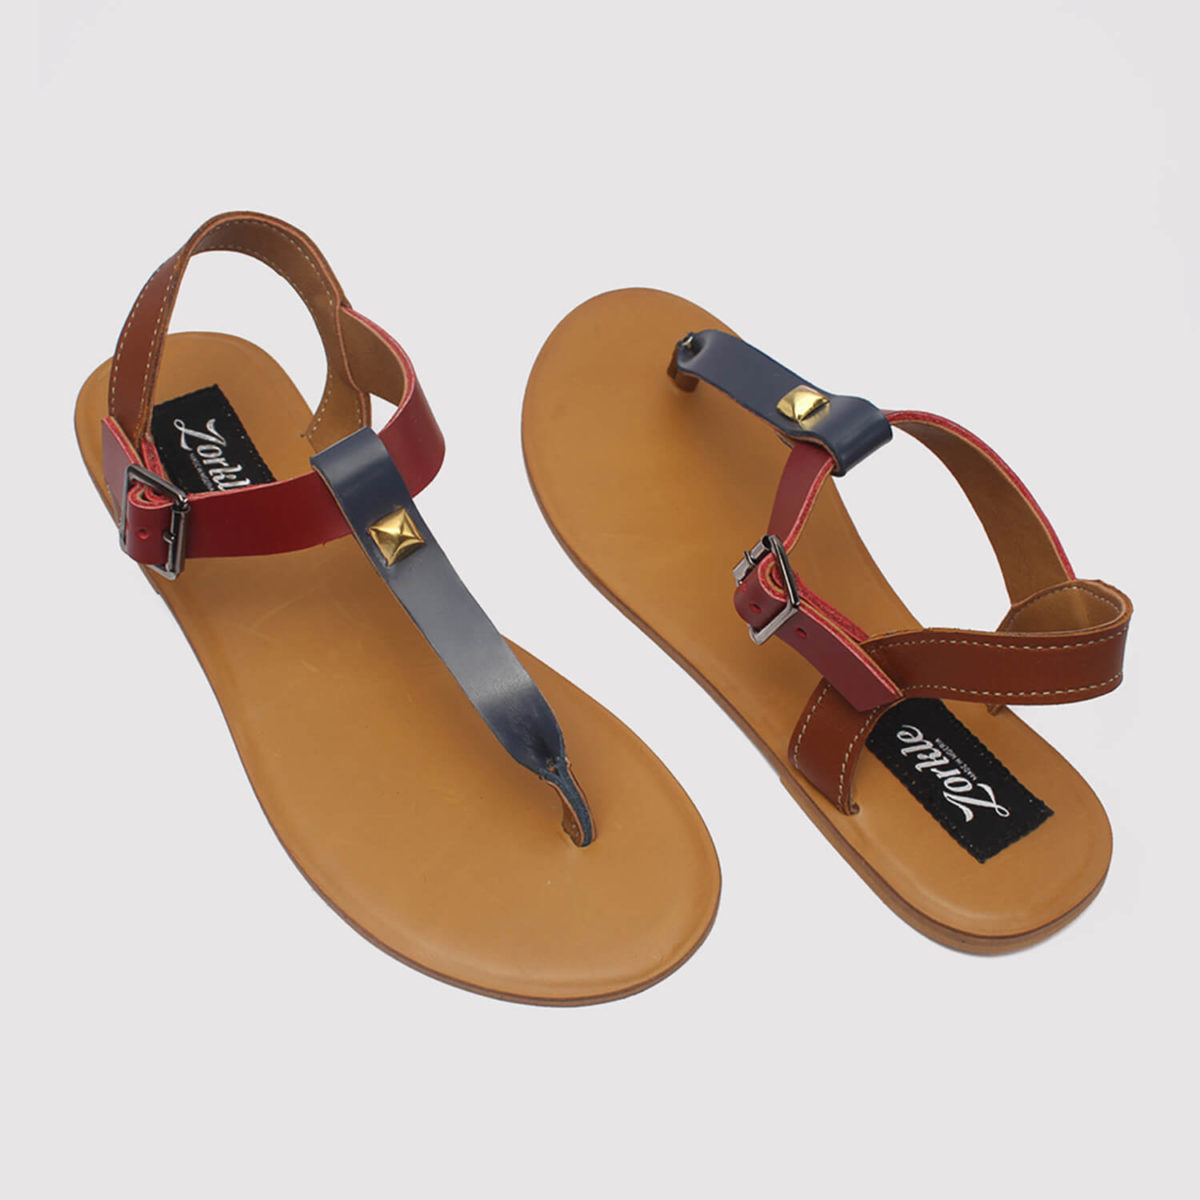 toke sandals blue brown red by zorkle shoes in lagos nigeria